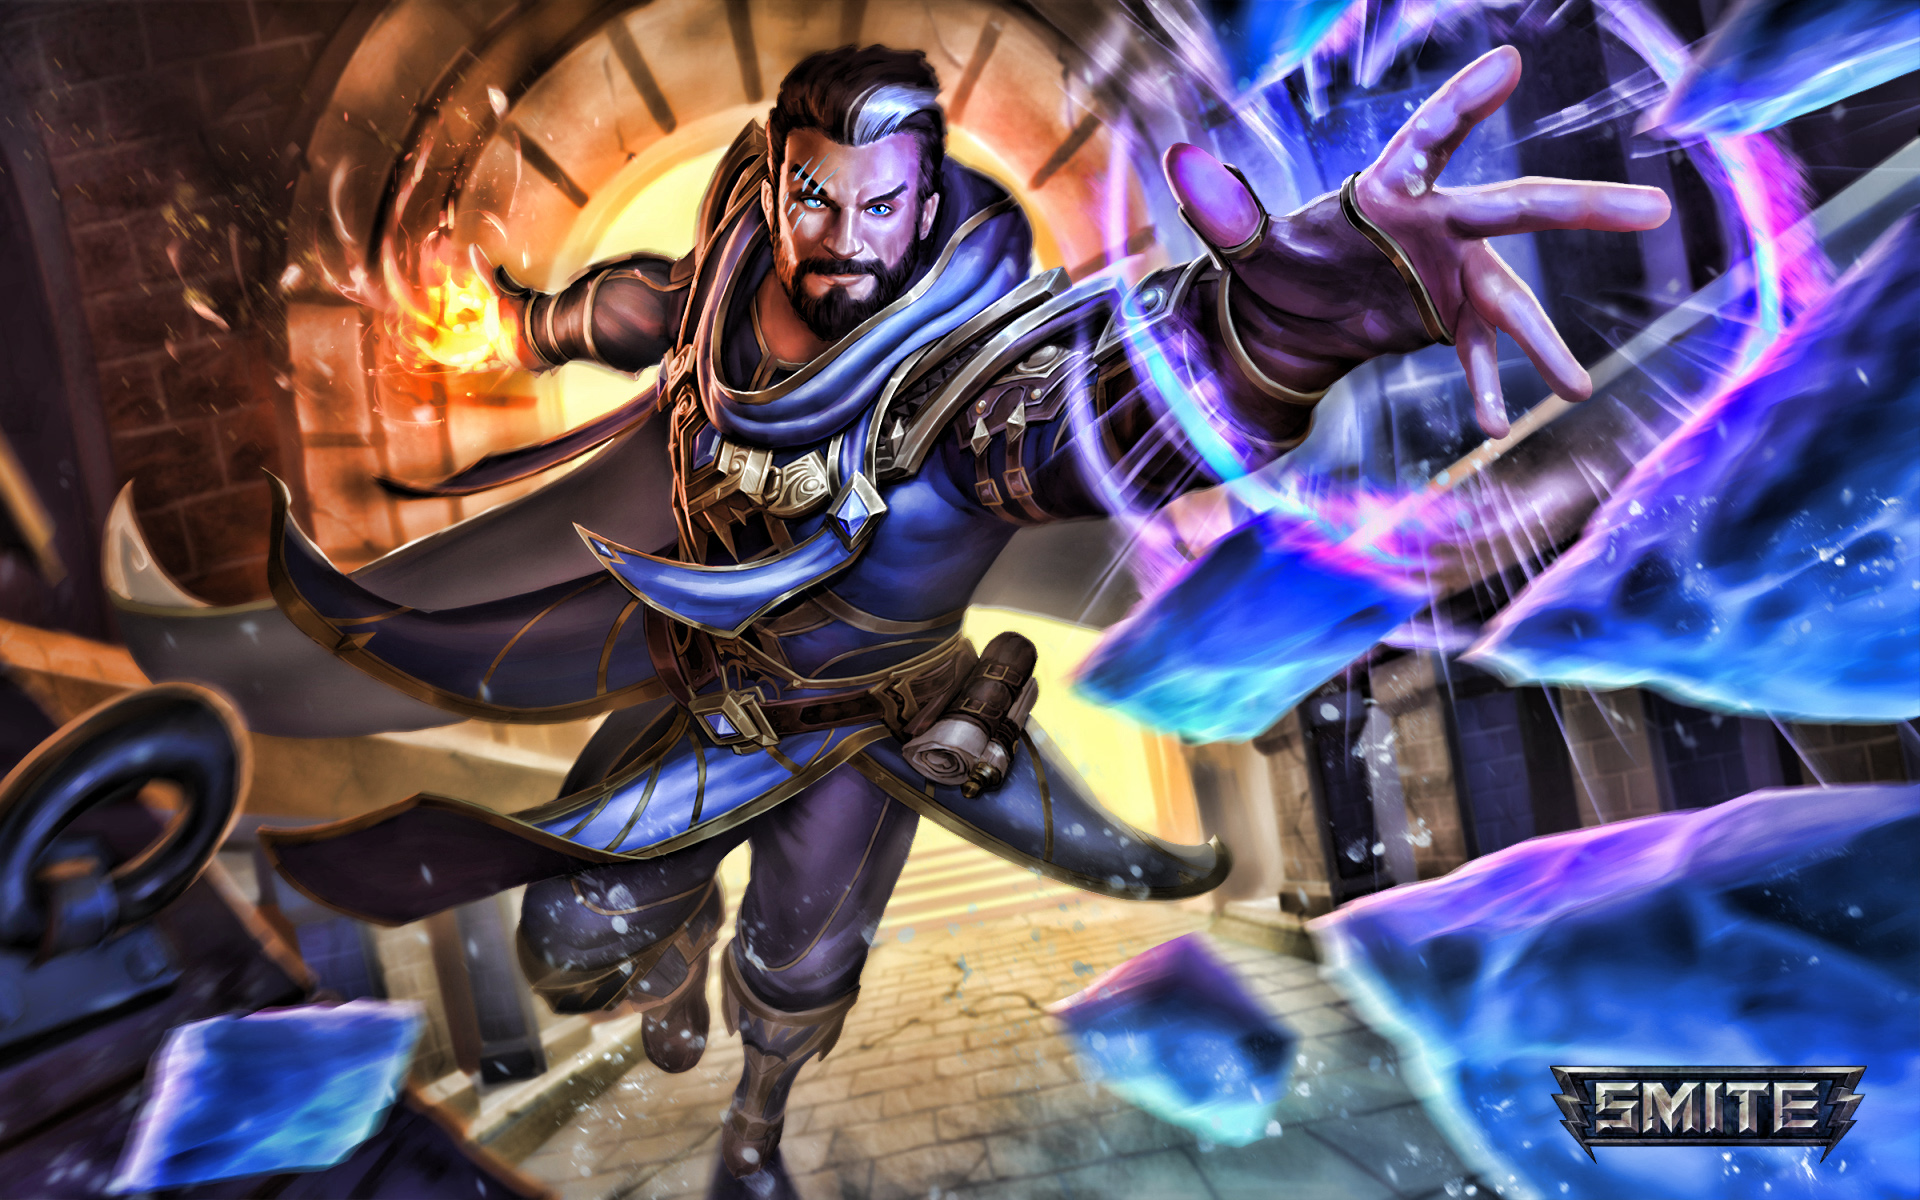 Merlin, artwork, Smite characters, flying merlin, blue shards, MOBA, Smite